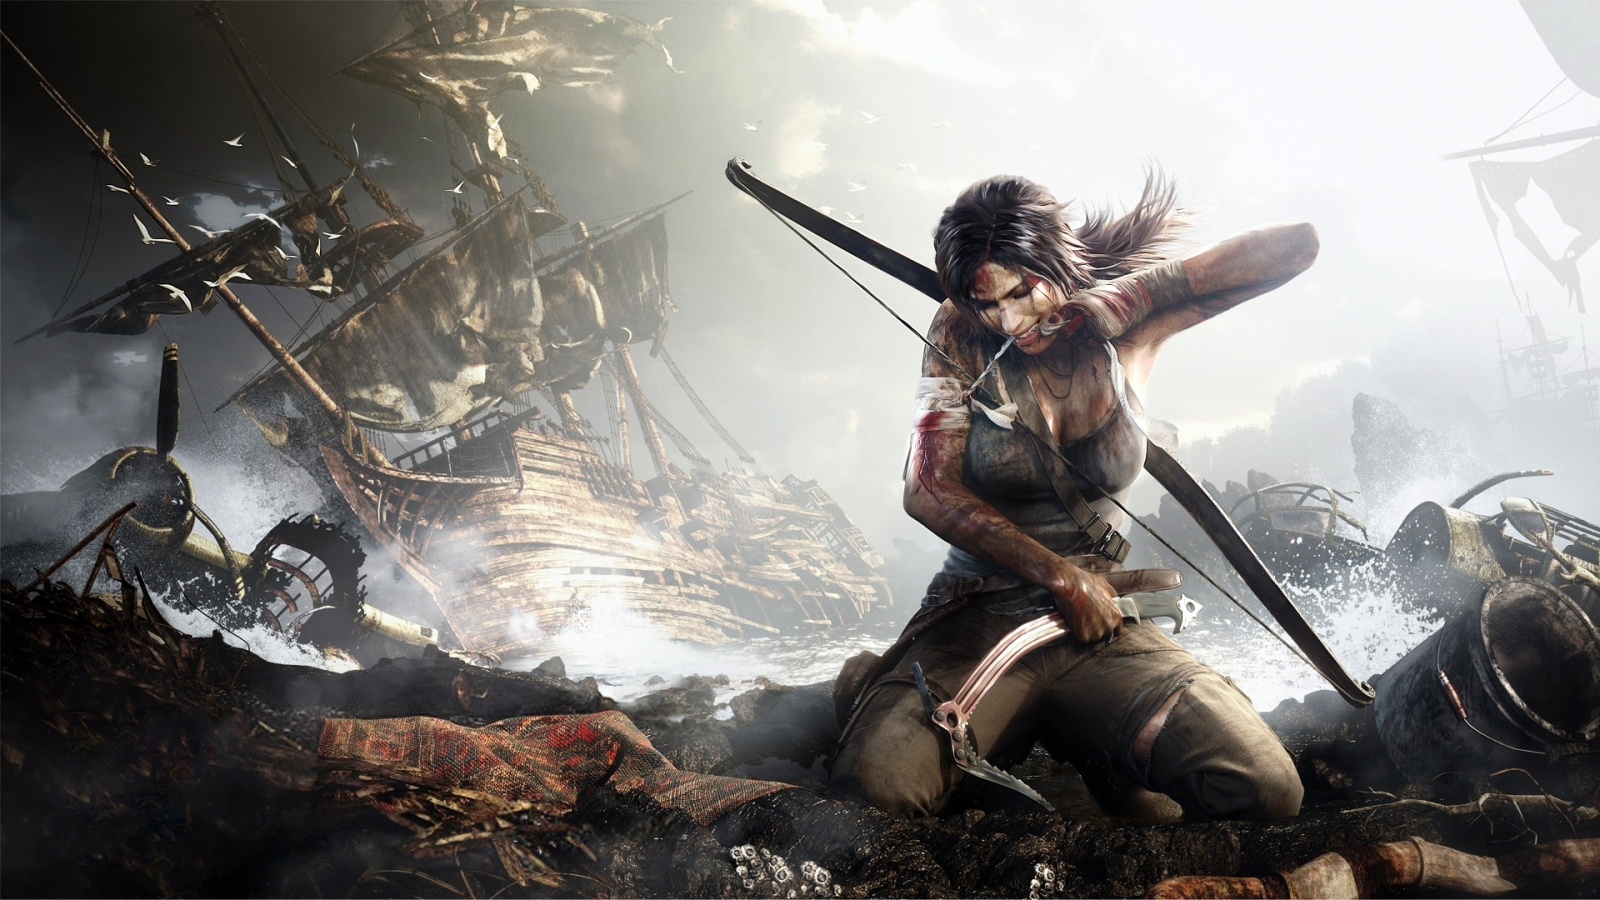 2013 tomb raider game wallpaper for 1600x900 hdtv 9 502 1 Alicia Vikander Reveals New Info On Upcoming Tomb Raider Film